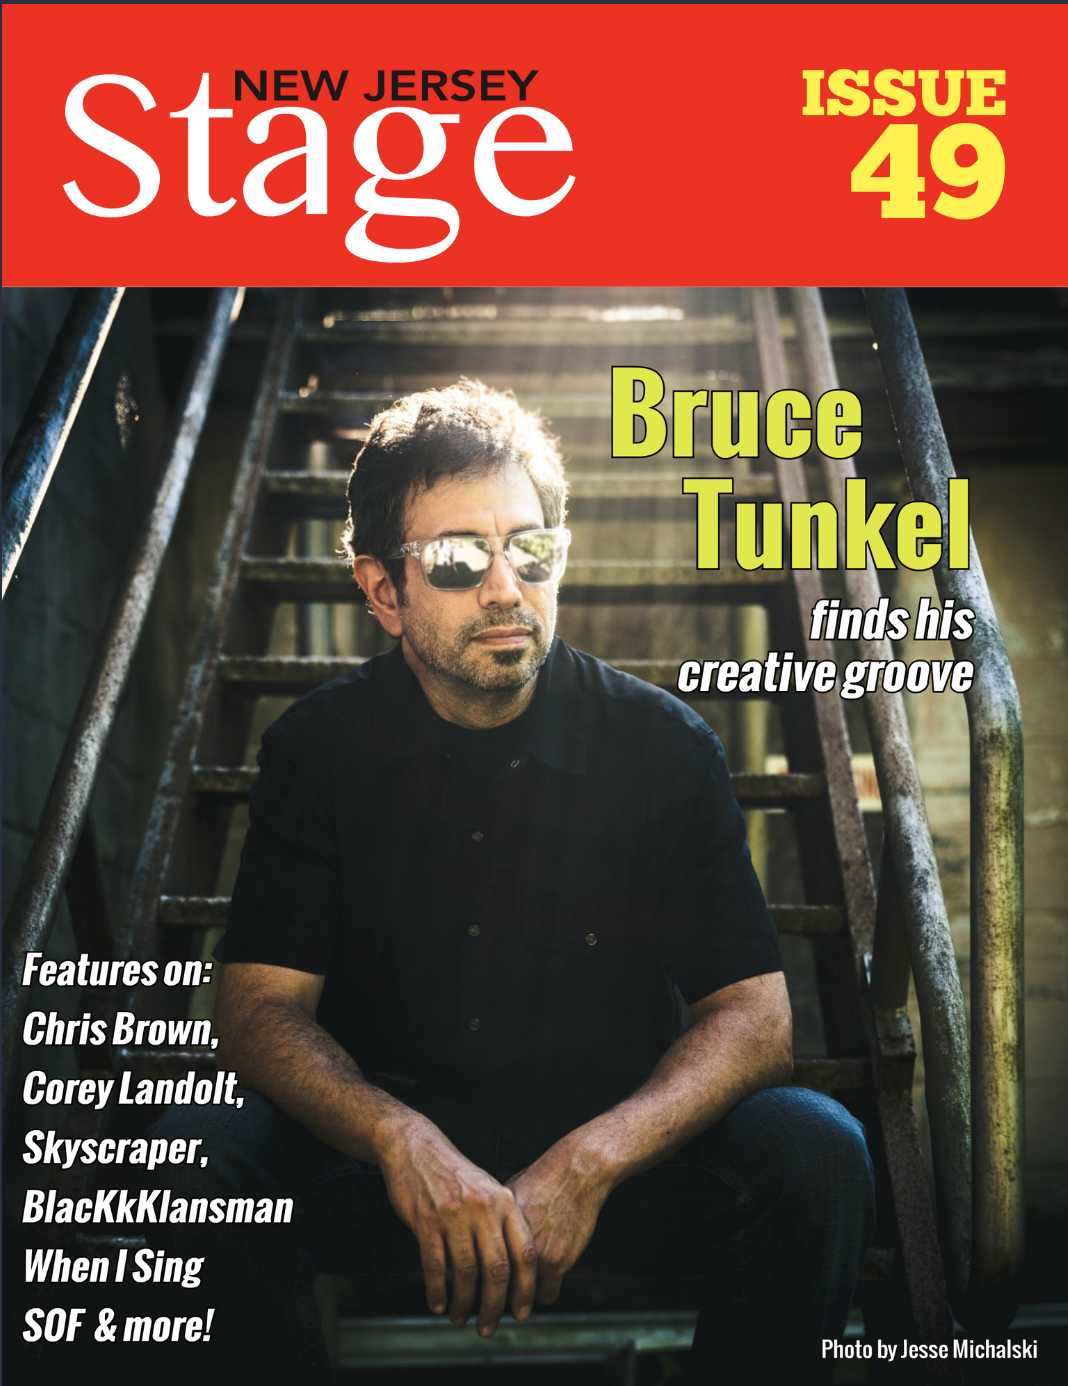 NJ Stage Magazine/Issue 49/ Bruce Tunkle